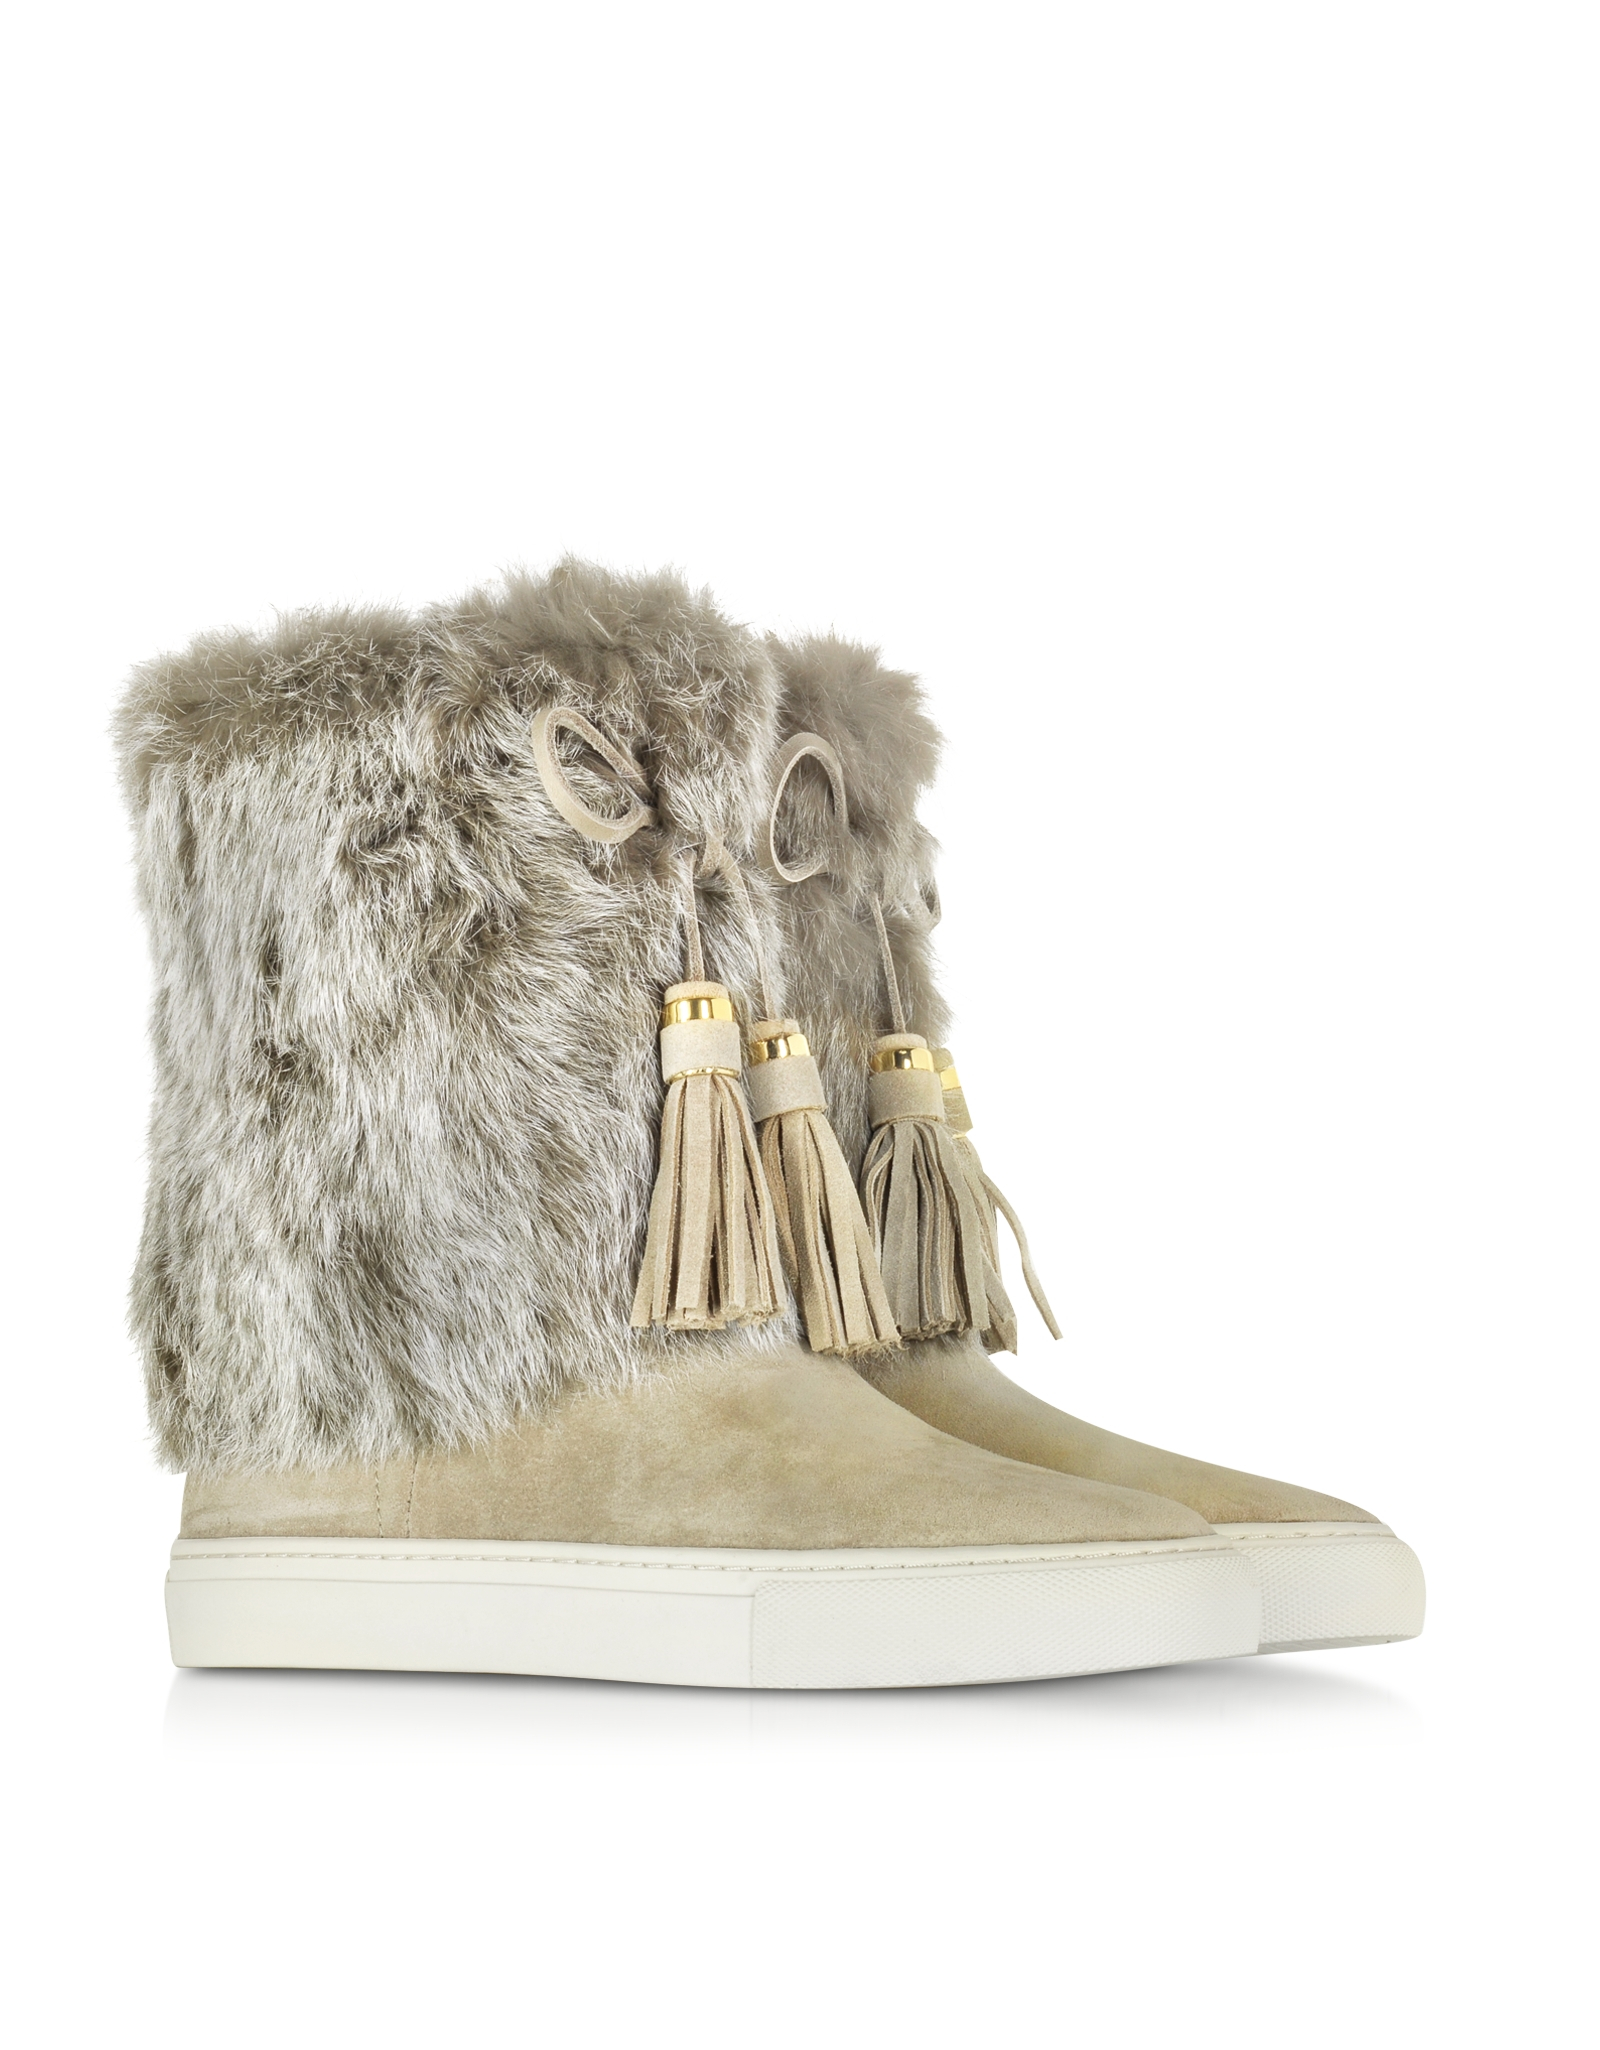 burch anjelica knot suede and rabbit fur boots